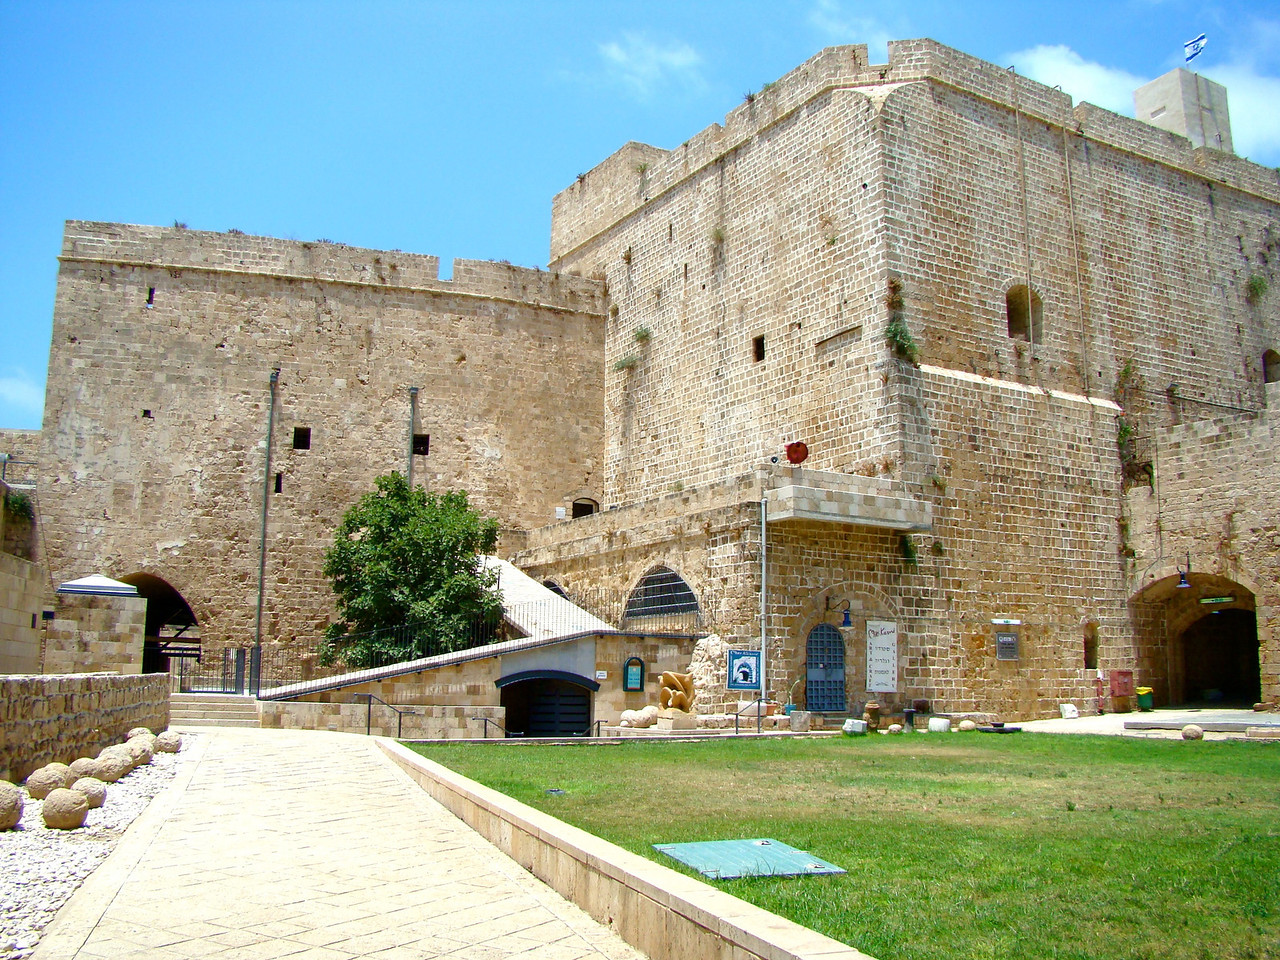 Fortress of St  John, prison,1948 Breakout contributed to British giving up control of Israel